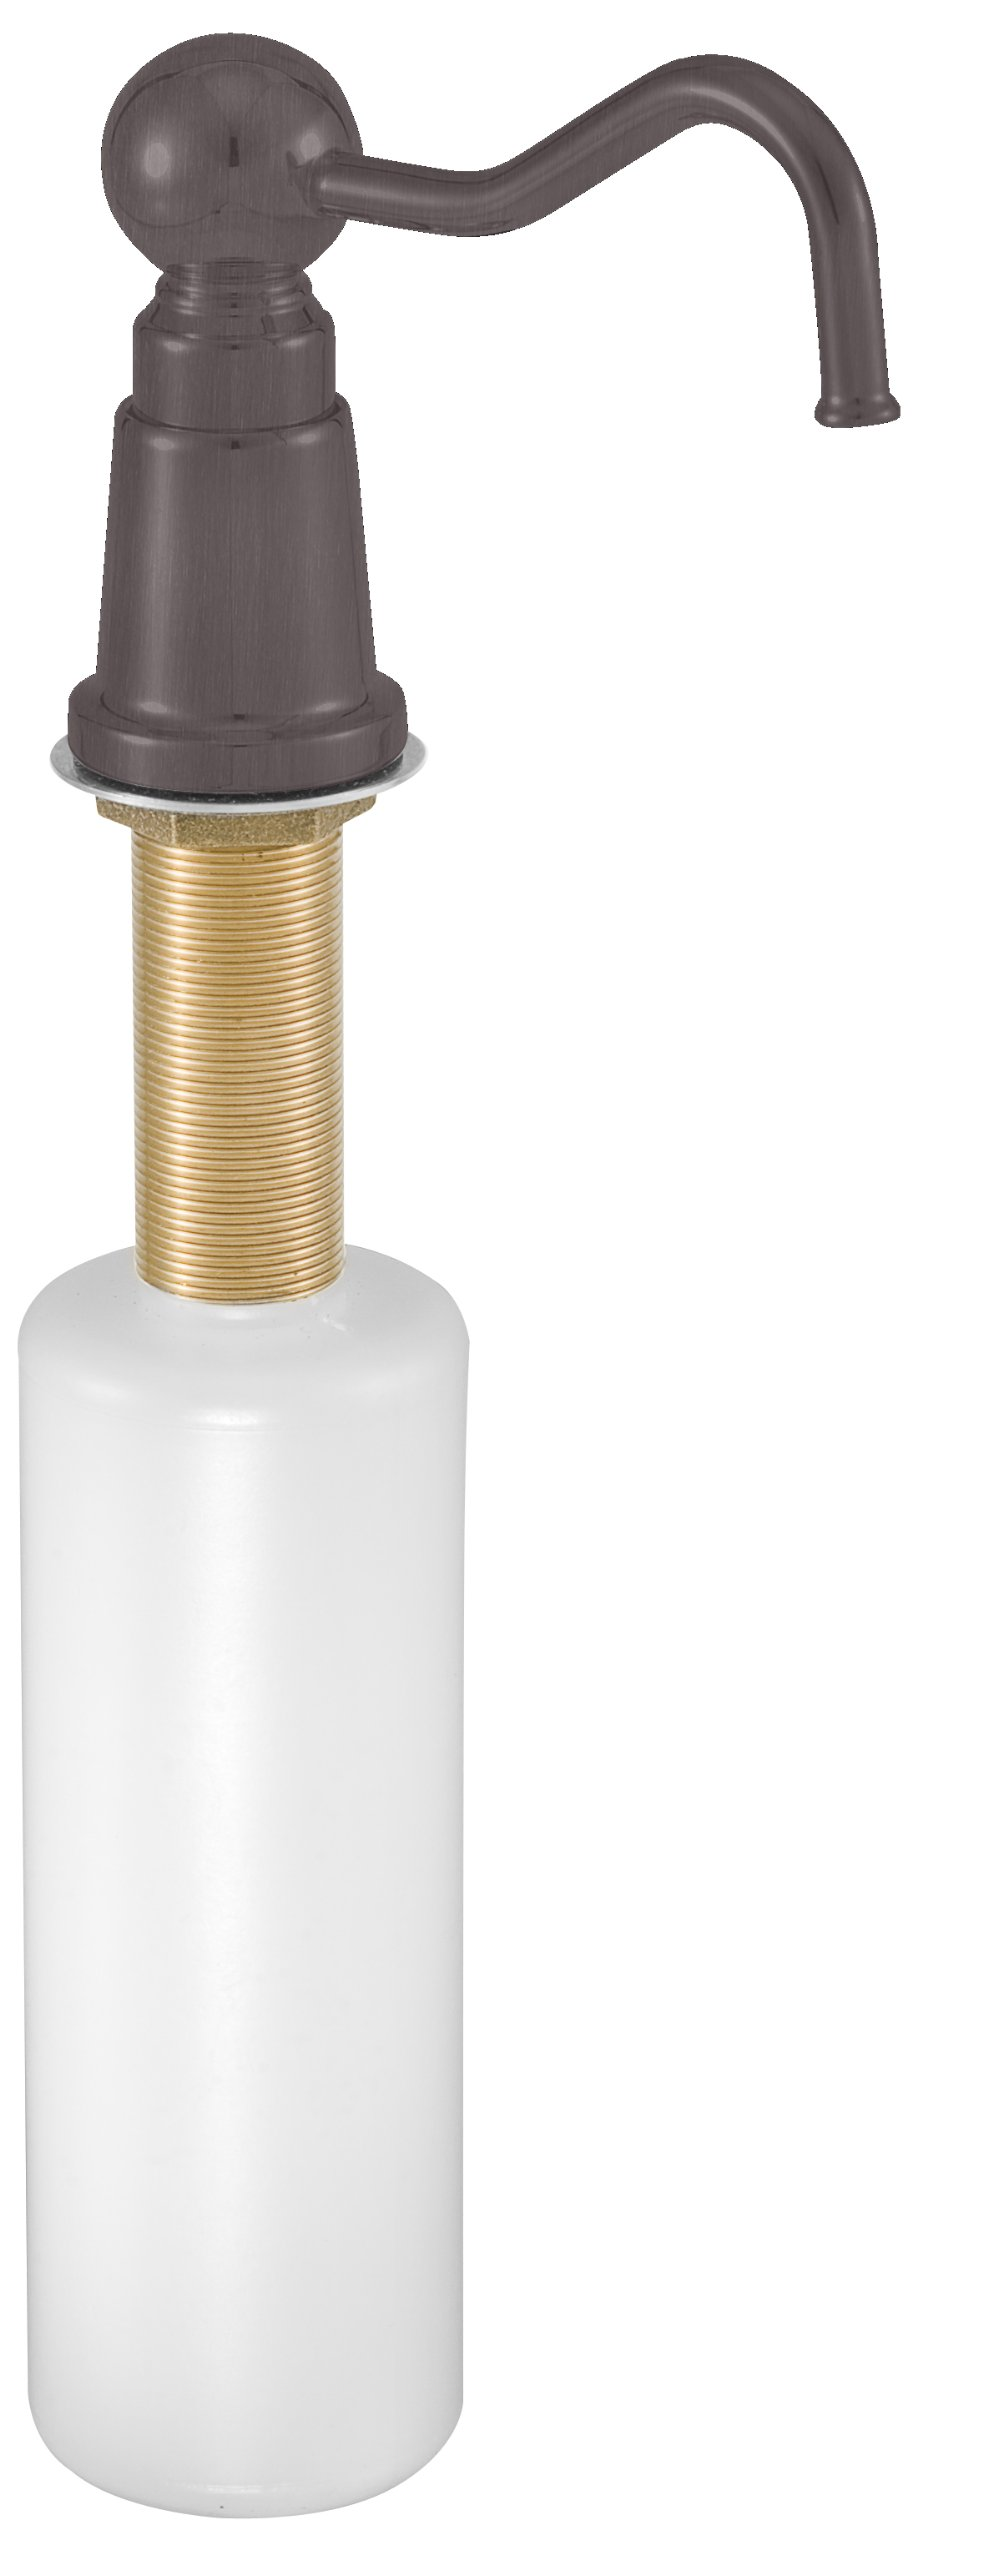 Westbrass Country Style Kitchen Soap/Lotion Dispenser, Oil Rubbed Bronze, D2175-12